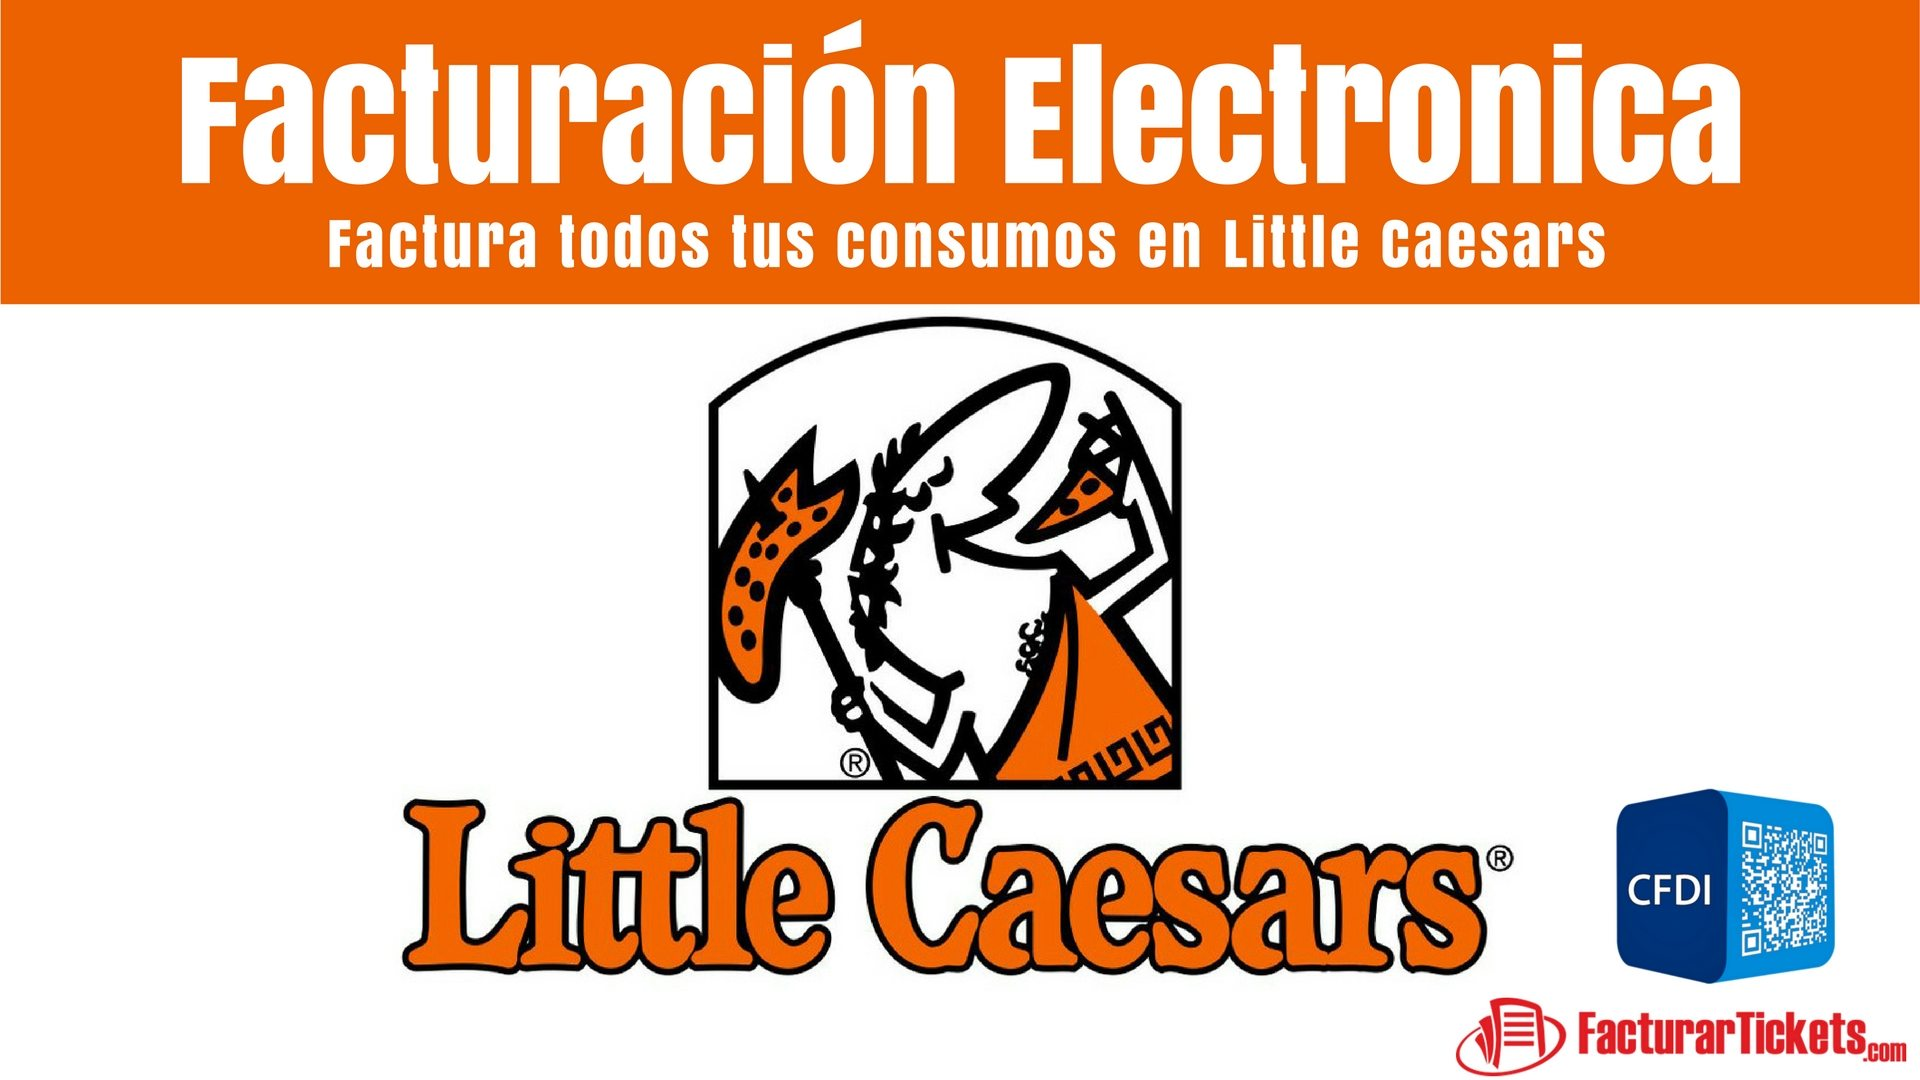 Little Caesars Facturacion en linea